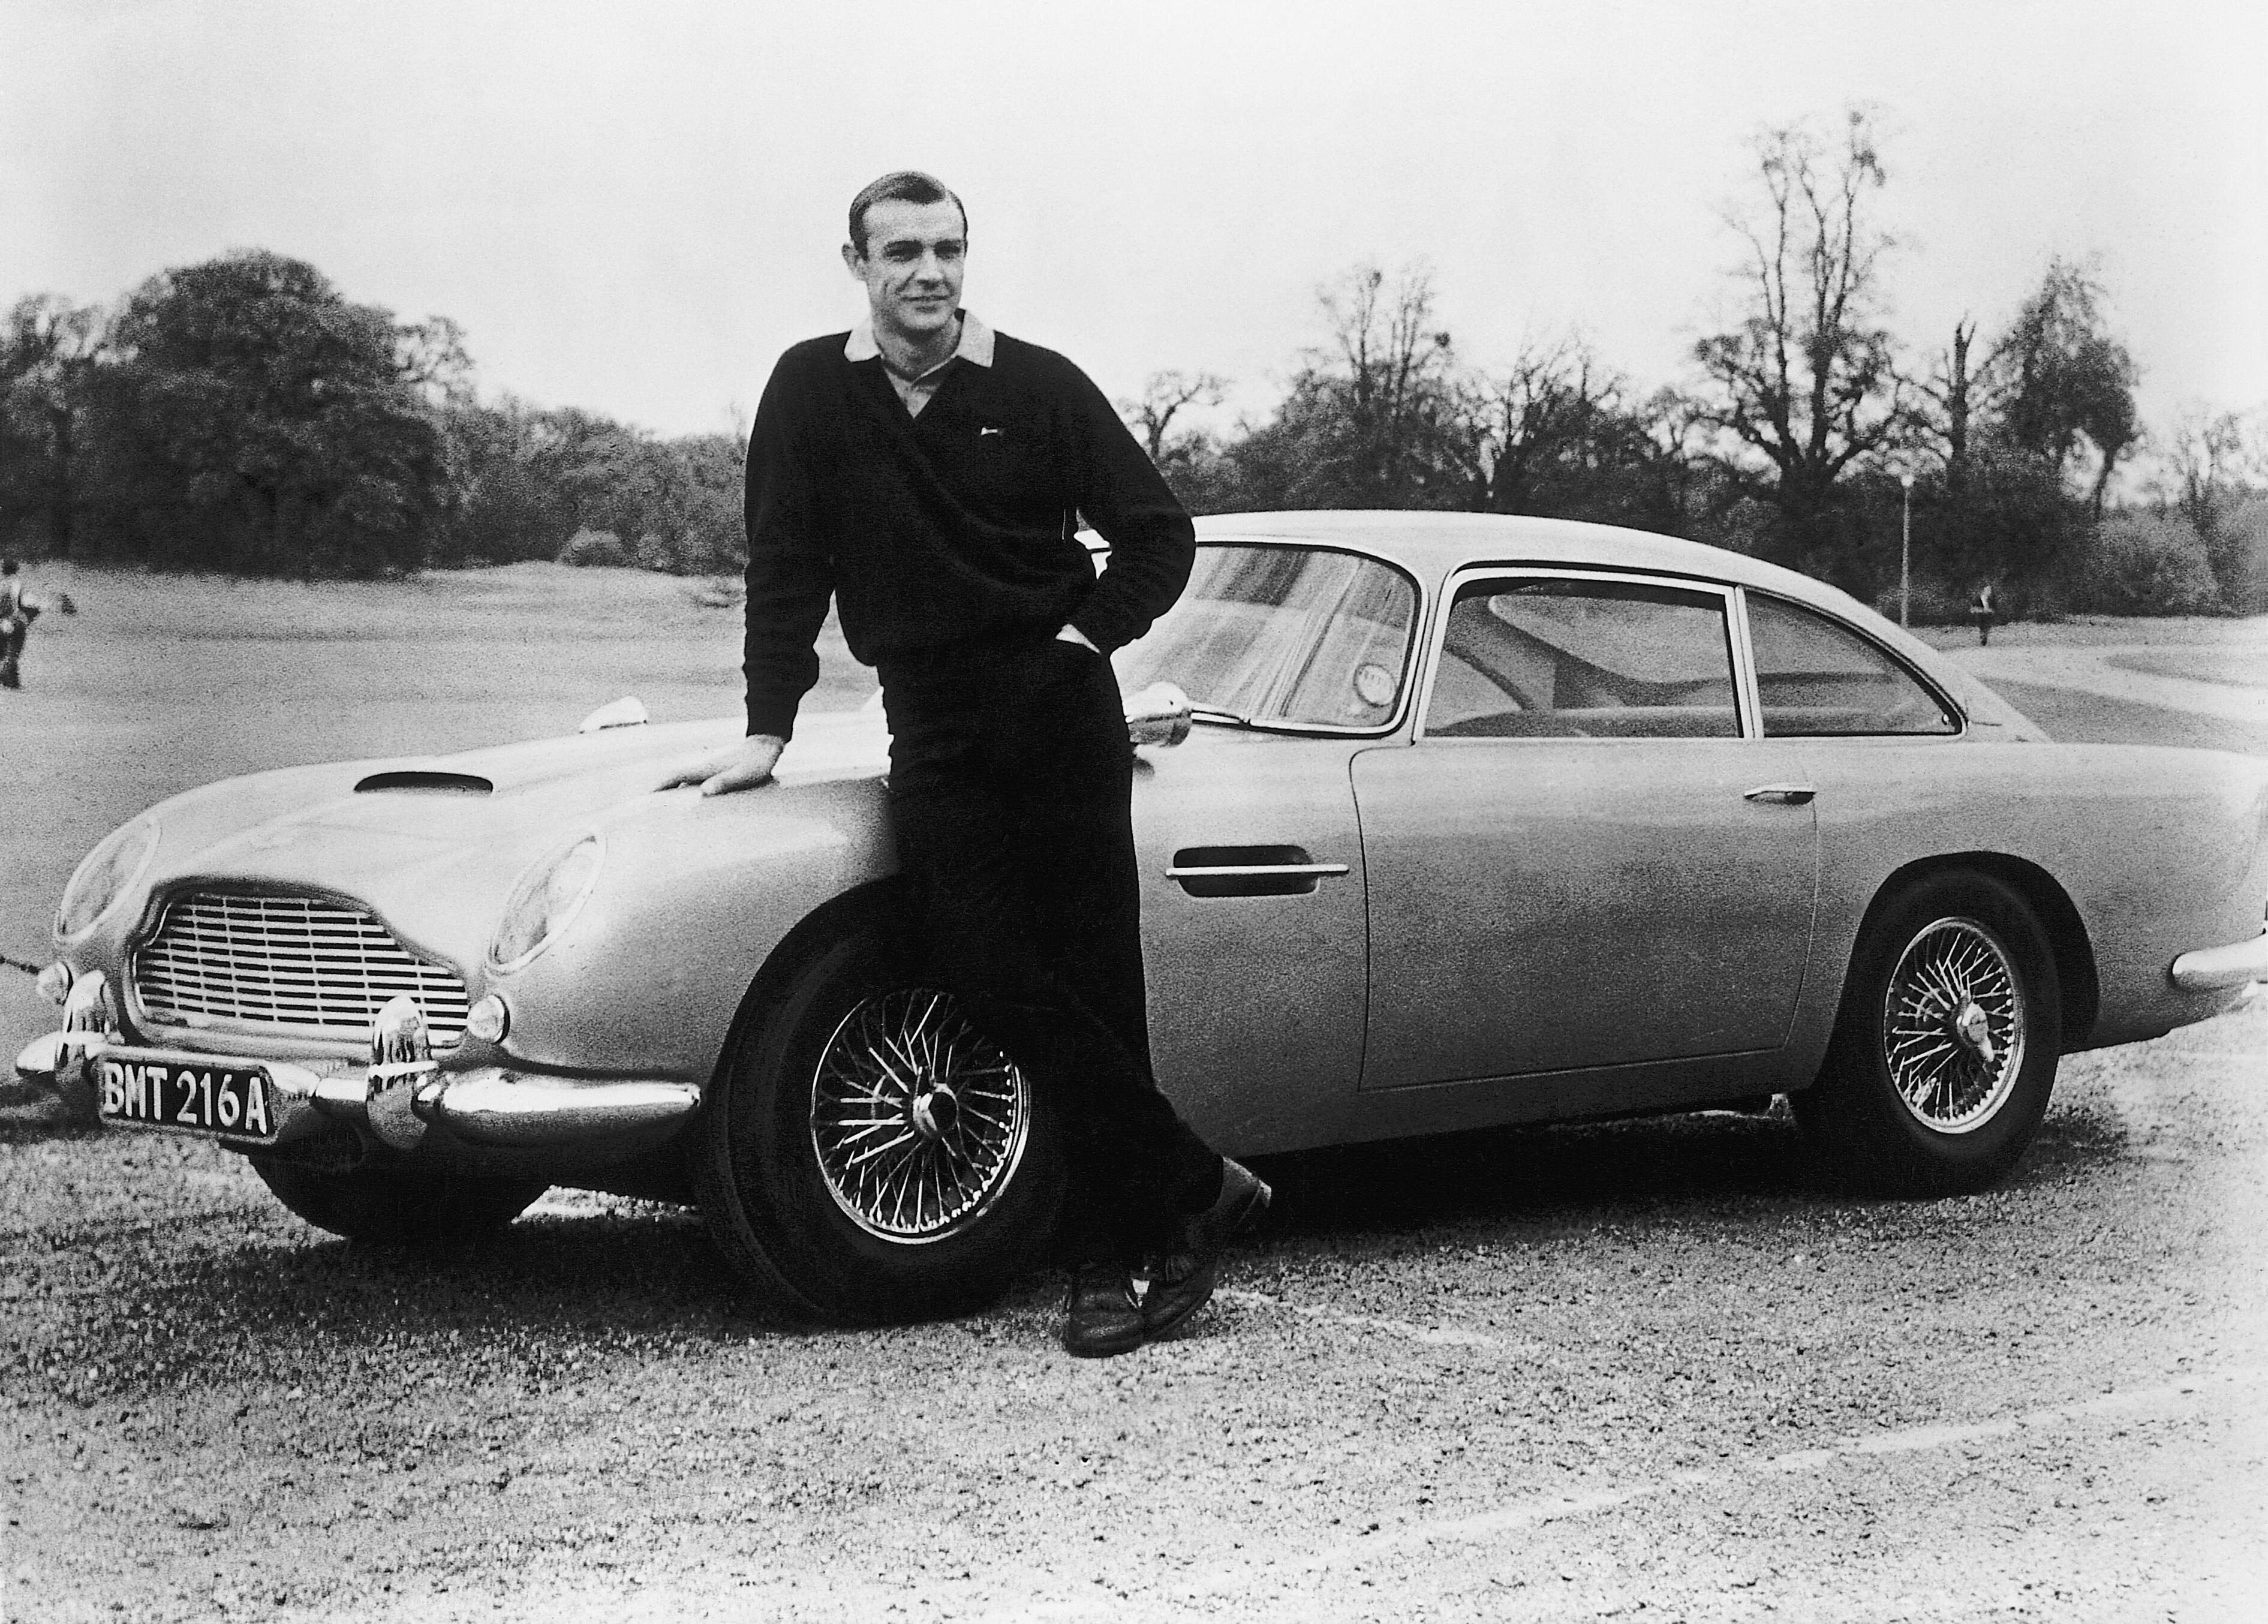 <p>Sean Connery in a relaxed moment on the set of Goldfinger, with the iconic 1964 Aston Martin DB5.</p>